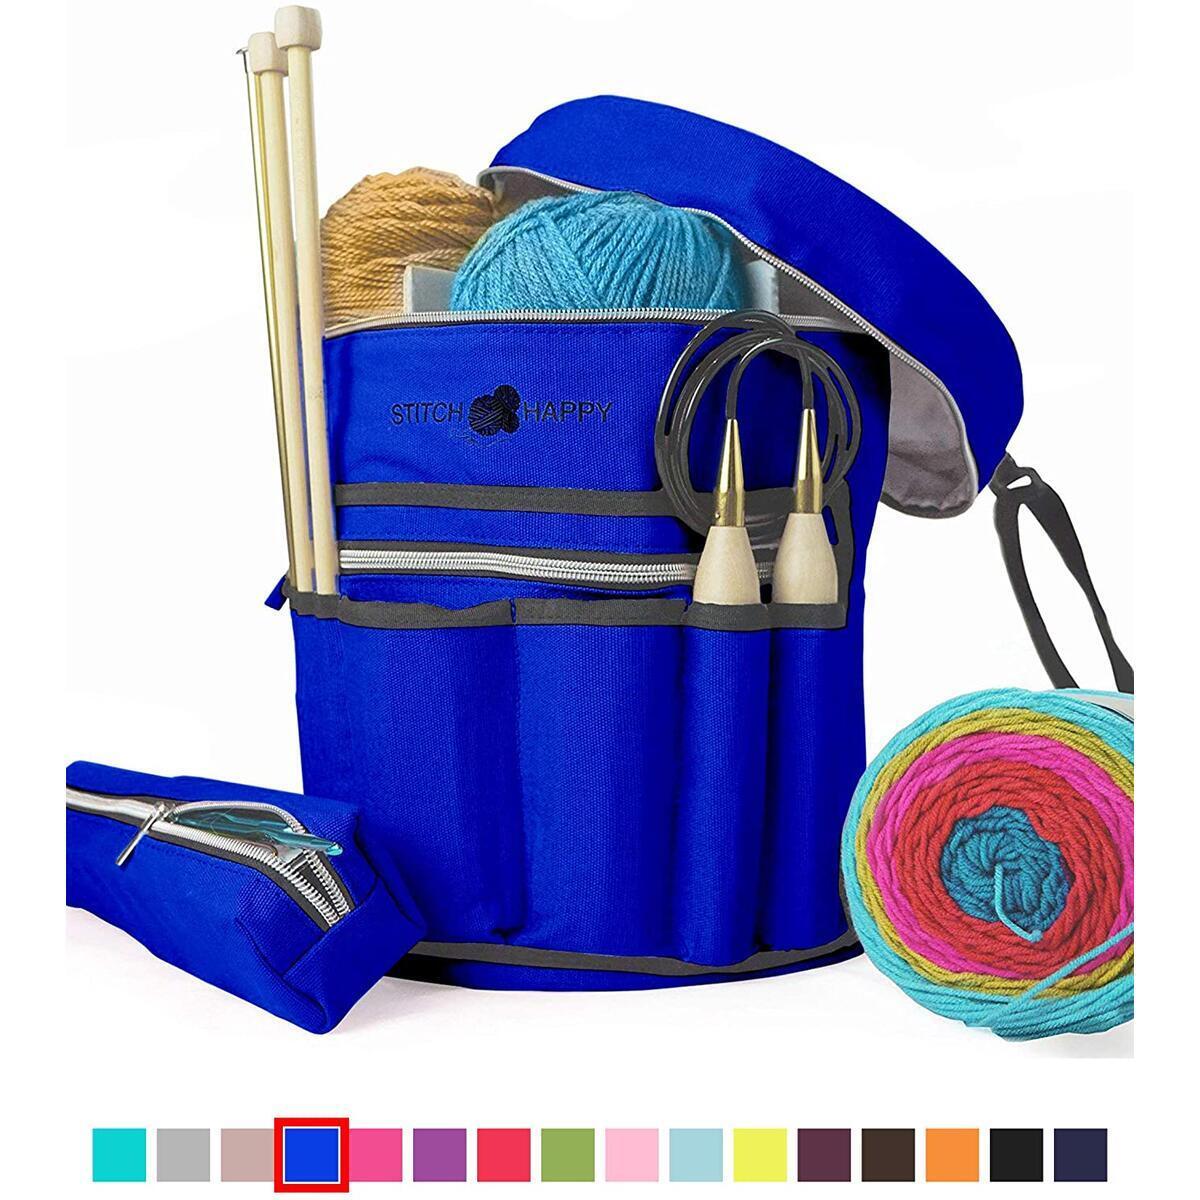 Stitch Happy Knitting Bag (Cobalt): 7 Pocket Yarn Bag, Crochet Bag for Yarn Storage, Crochet Storage